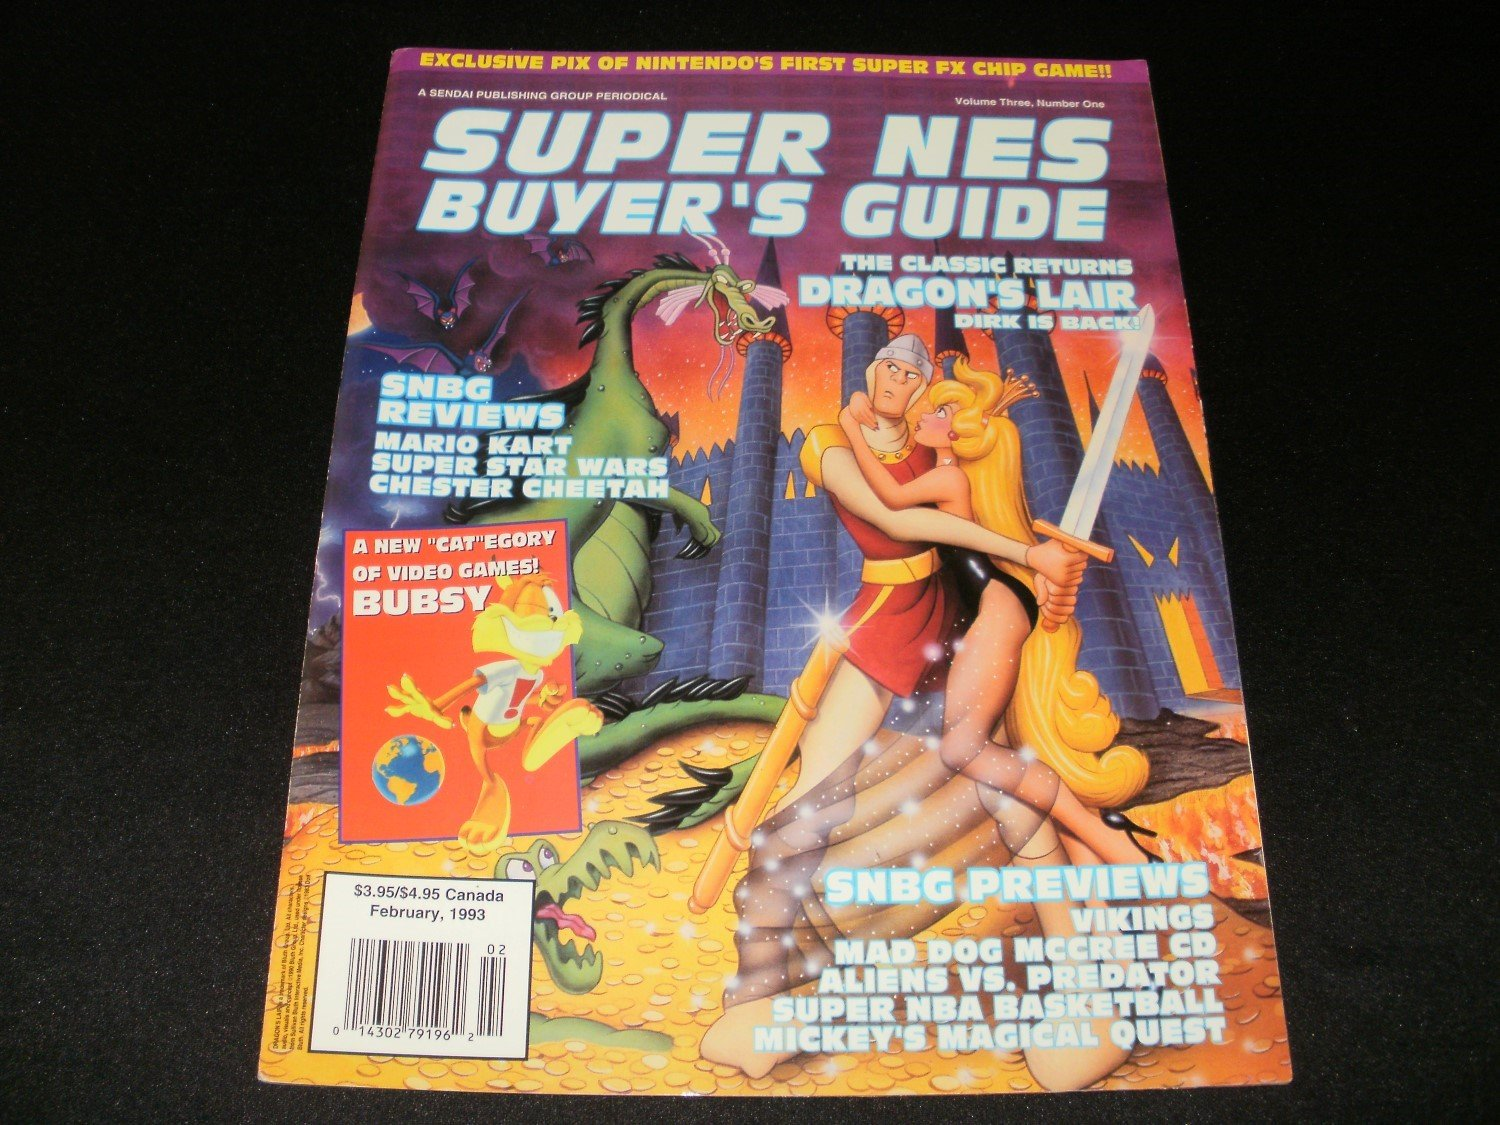 Super SNES Buyer's Guide - February 1993 - Volume 3 - Number 1